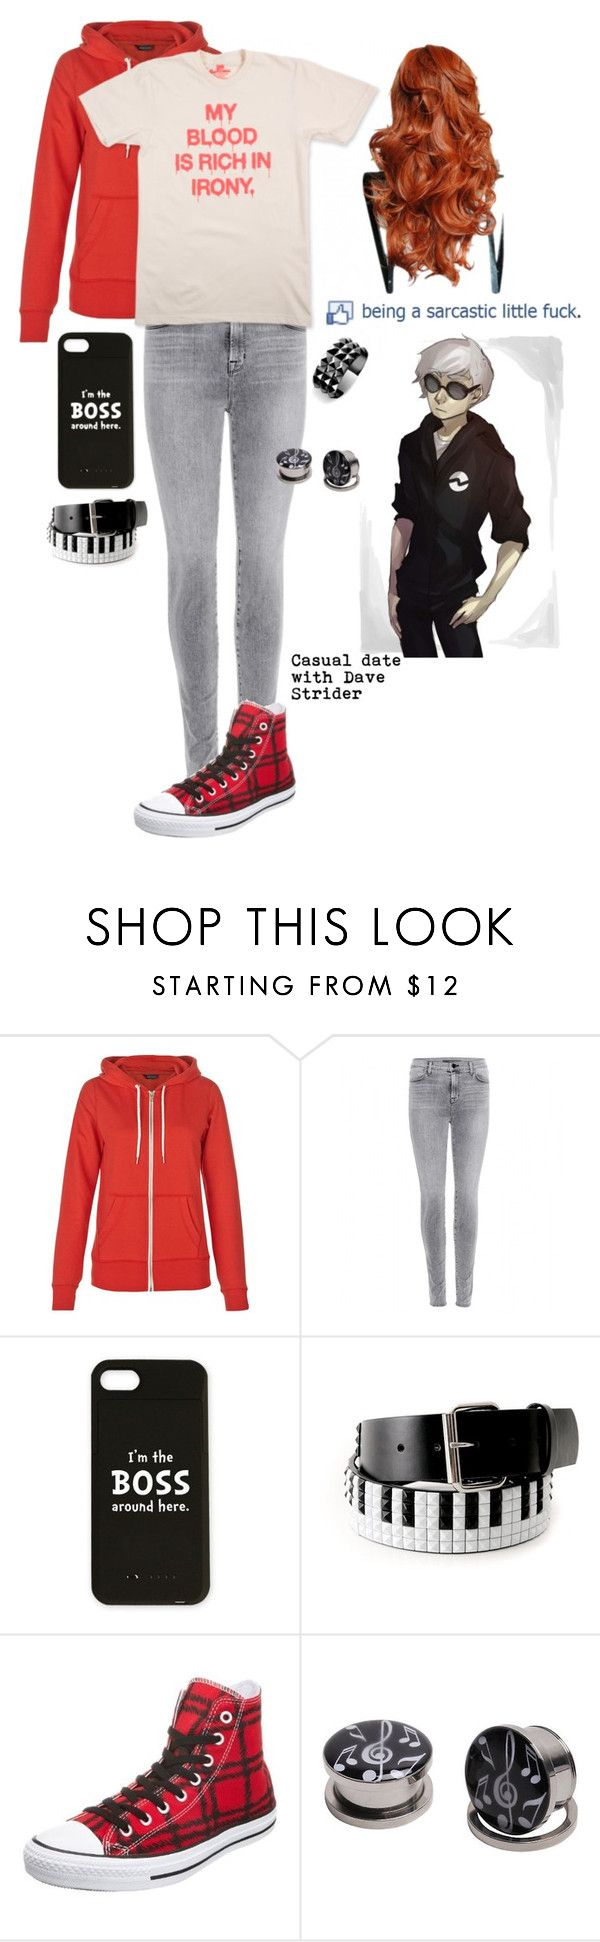 """""""A Casual Date With Dave Strider"""" by chuckygal-mp ❤ liked on Polyvore featuring J Brand, Converse, Waterford, YES, homestuck, davestrider and irony"""